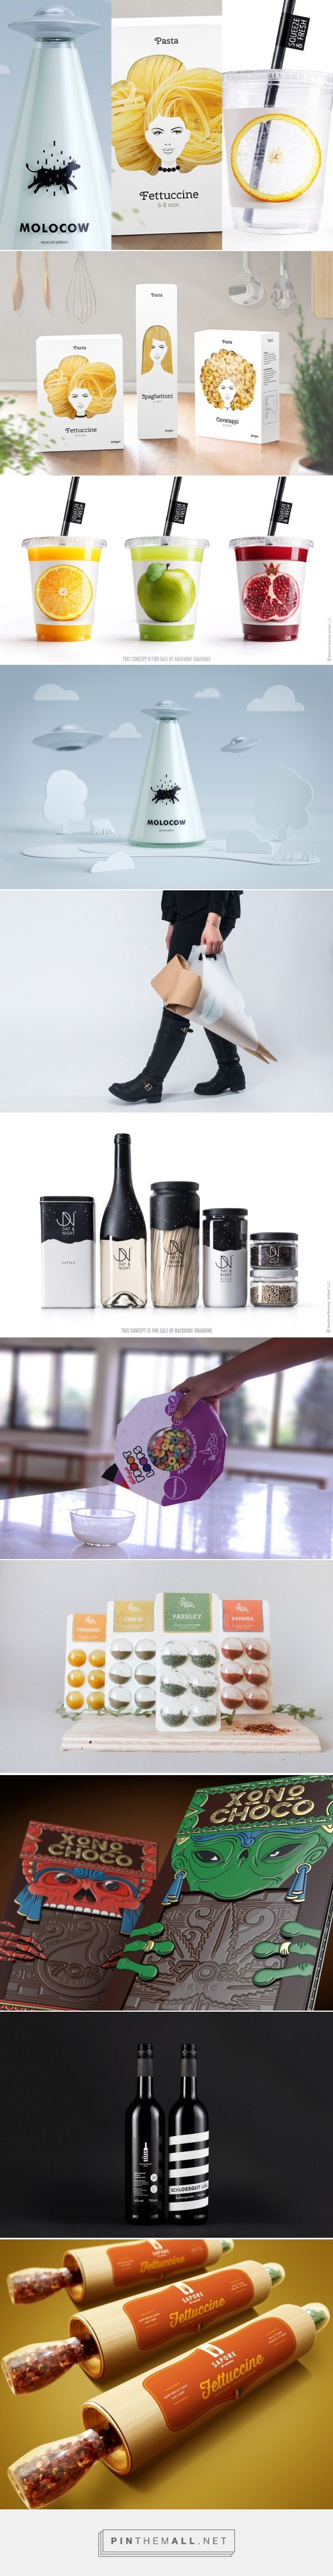 top 10 Packaging design You Shouldn't Miss In March 2016 - http://www.packagingoftheworld.com/2016/04/packaging-you-shouldnt-miss-in-march.html